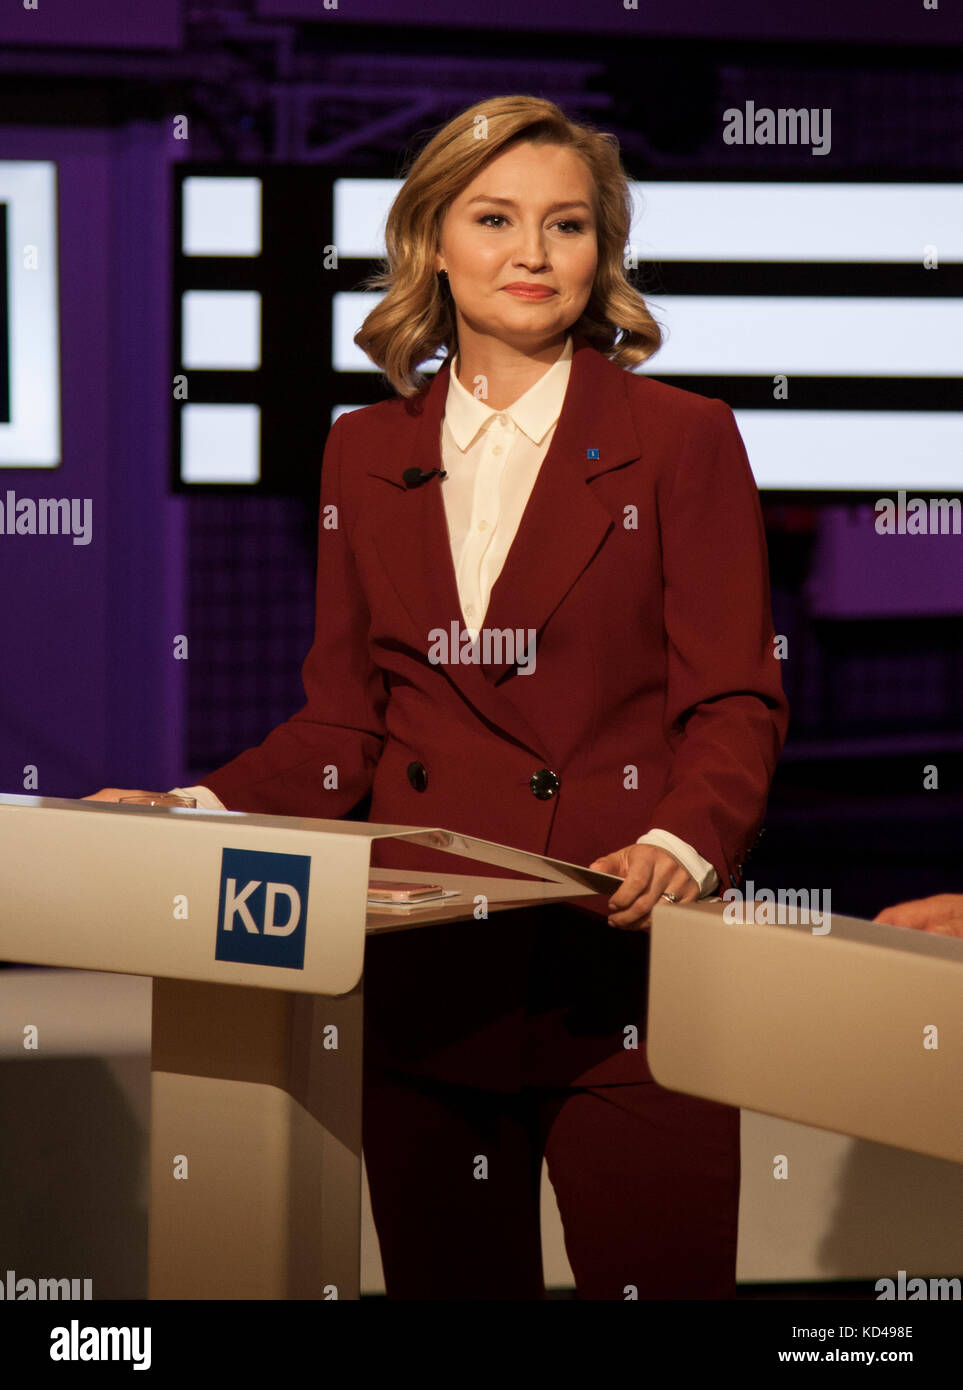 The Swedish election year 2018 began with a party leadership debate in Swedish television,Cristian Democrats partyleader - Stock Image